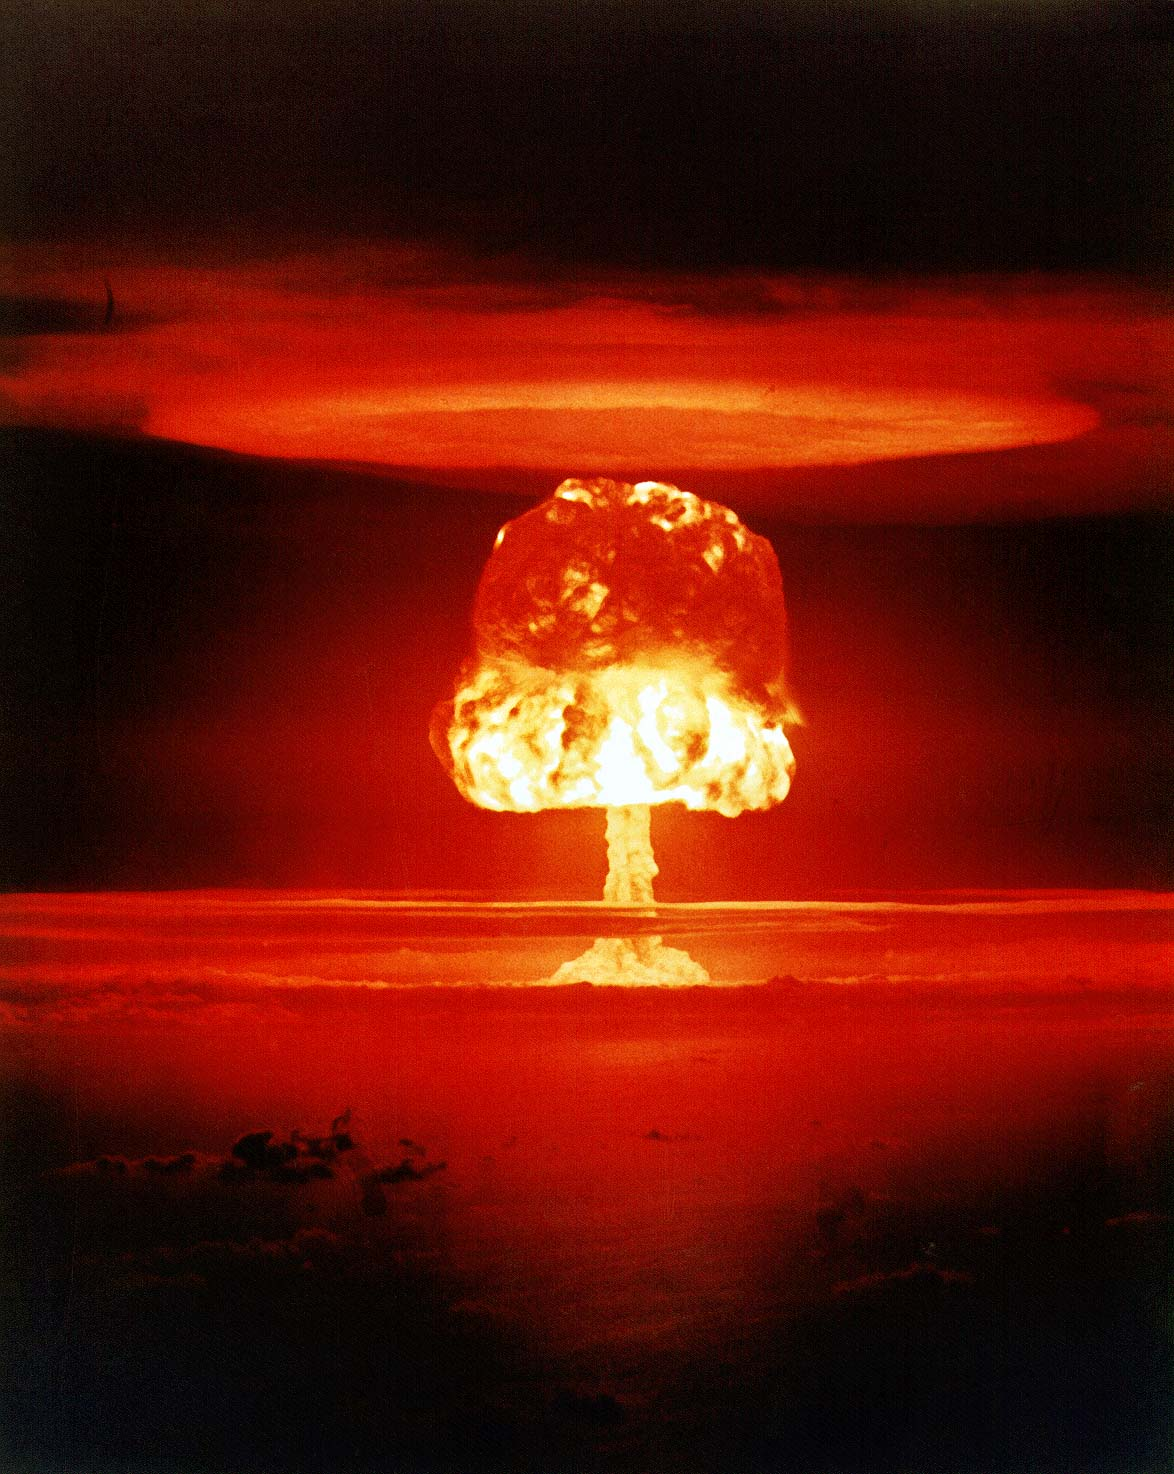 the debate over the real objectives of the atomic bombing of japan in 1945 Truman's horrible mistake to use the atomic  essay about the debate over truman's use of the atomic  downplays the very real risk invading japan posed.